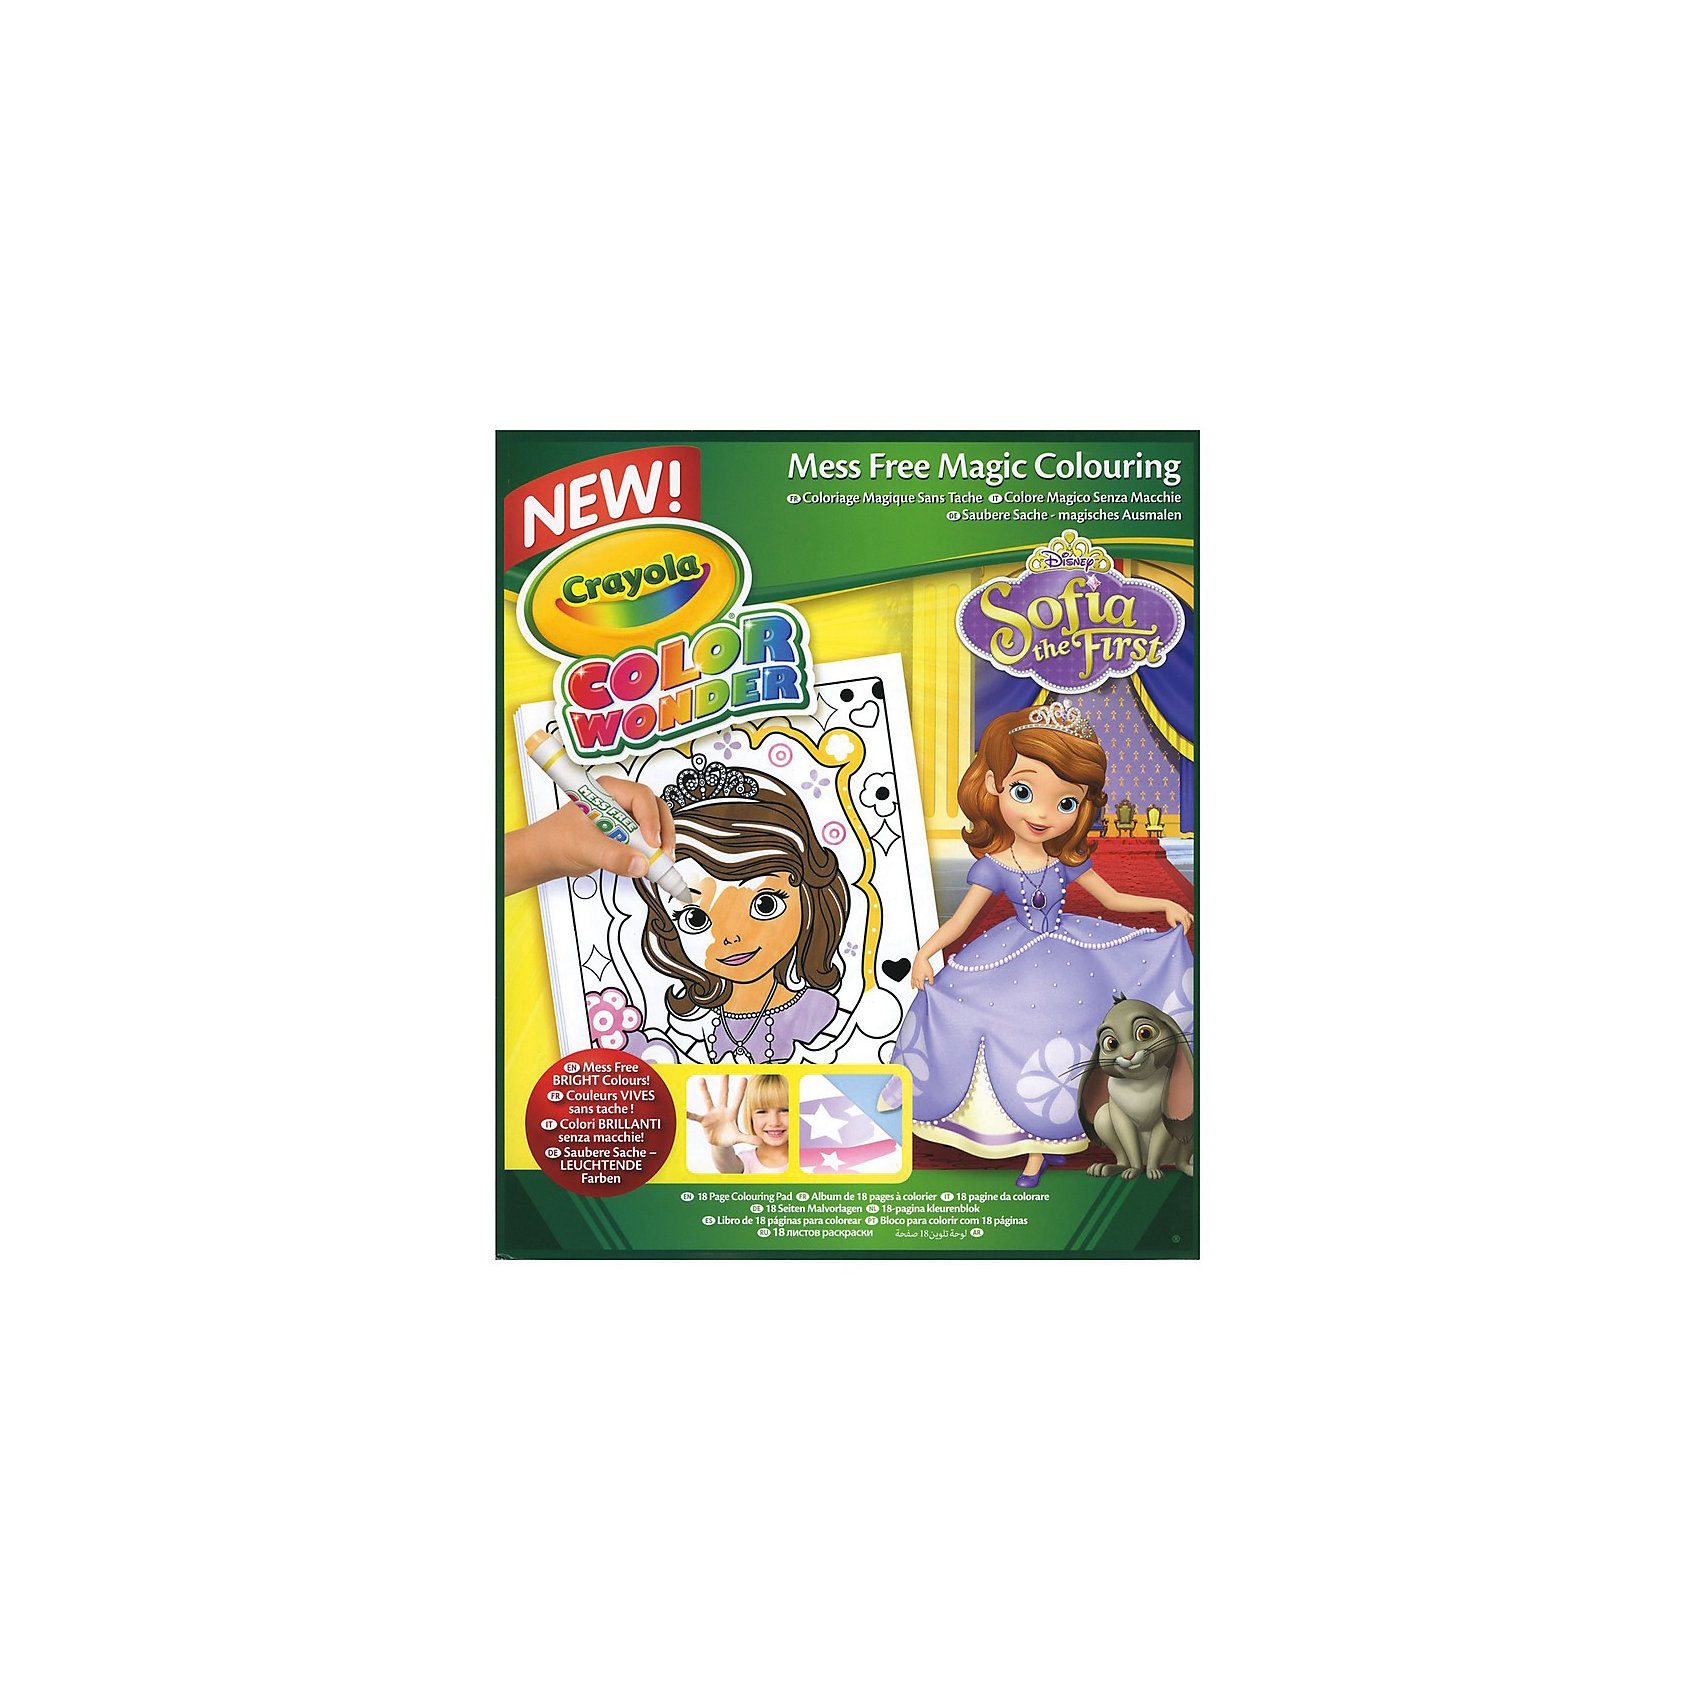 Crayola Раскраска Color Wonder, София Прекрасная раскраска crayola color wonder тачки 12787